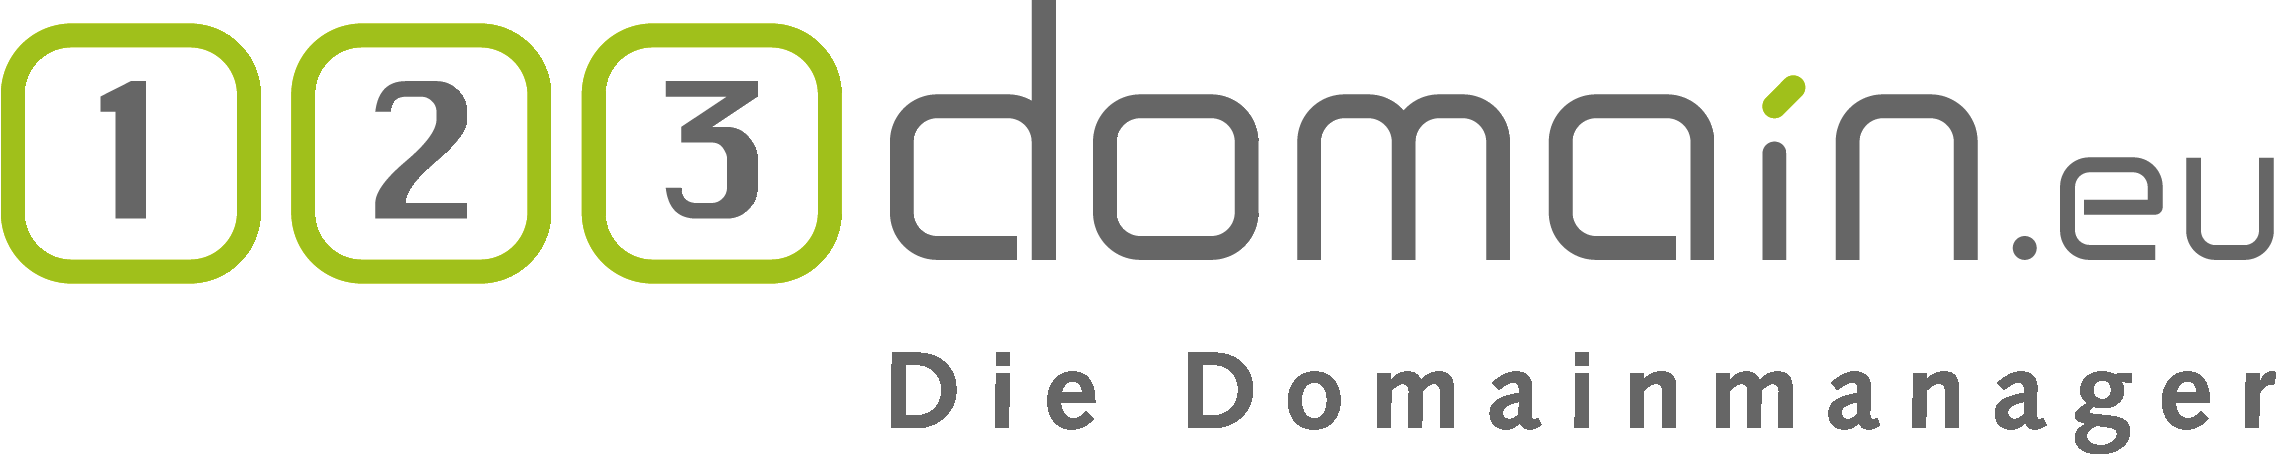 Logo 123domain.eu - Die Domainmanager